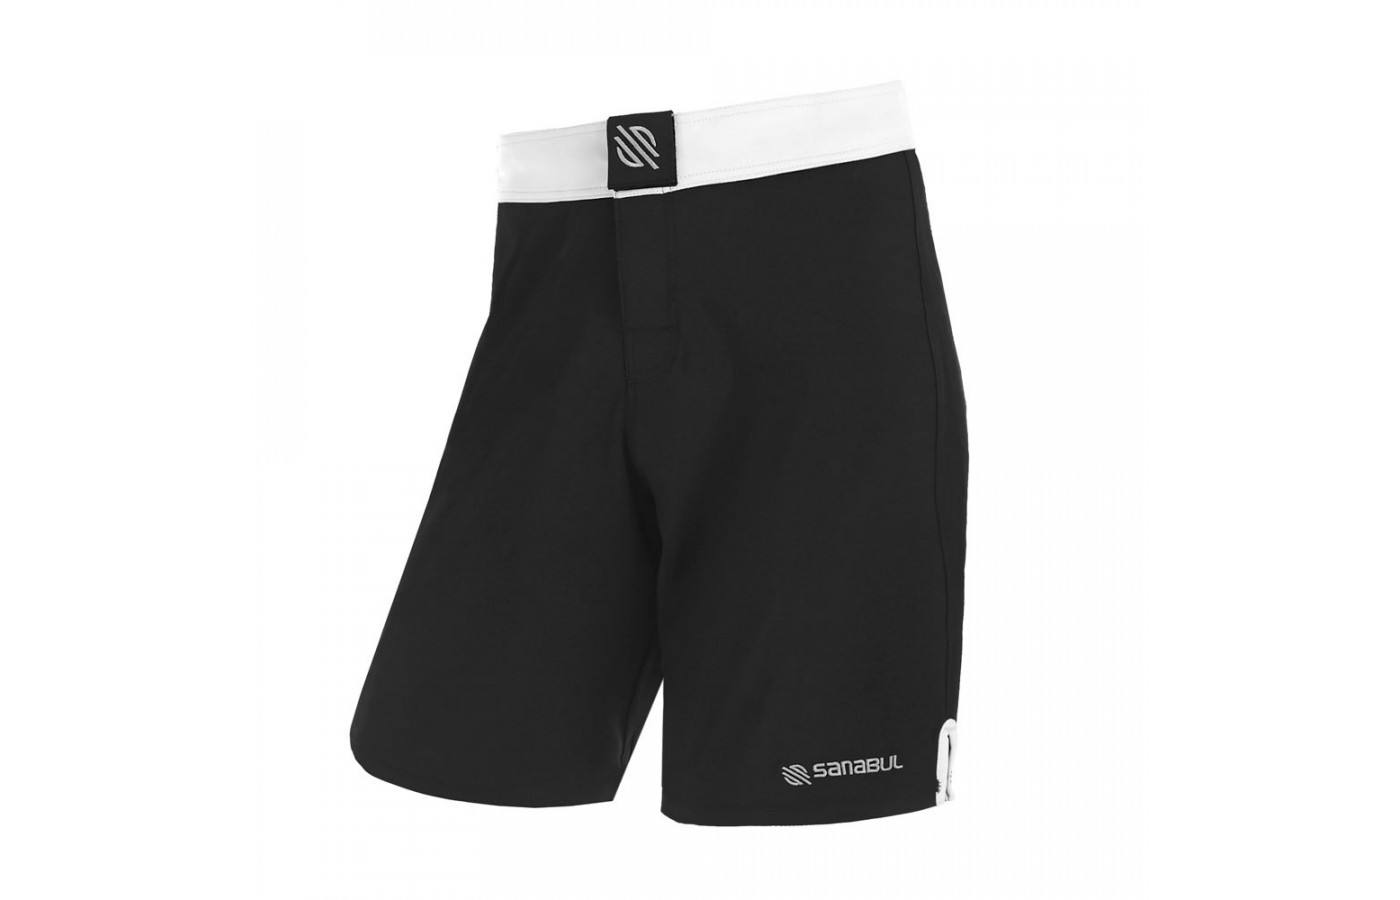 sanabul trunks white